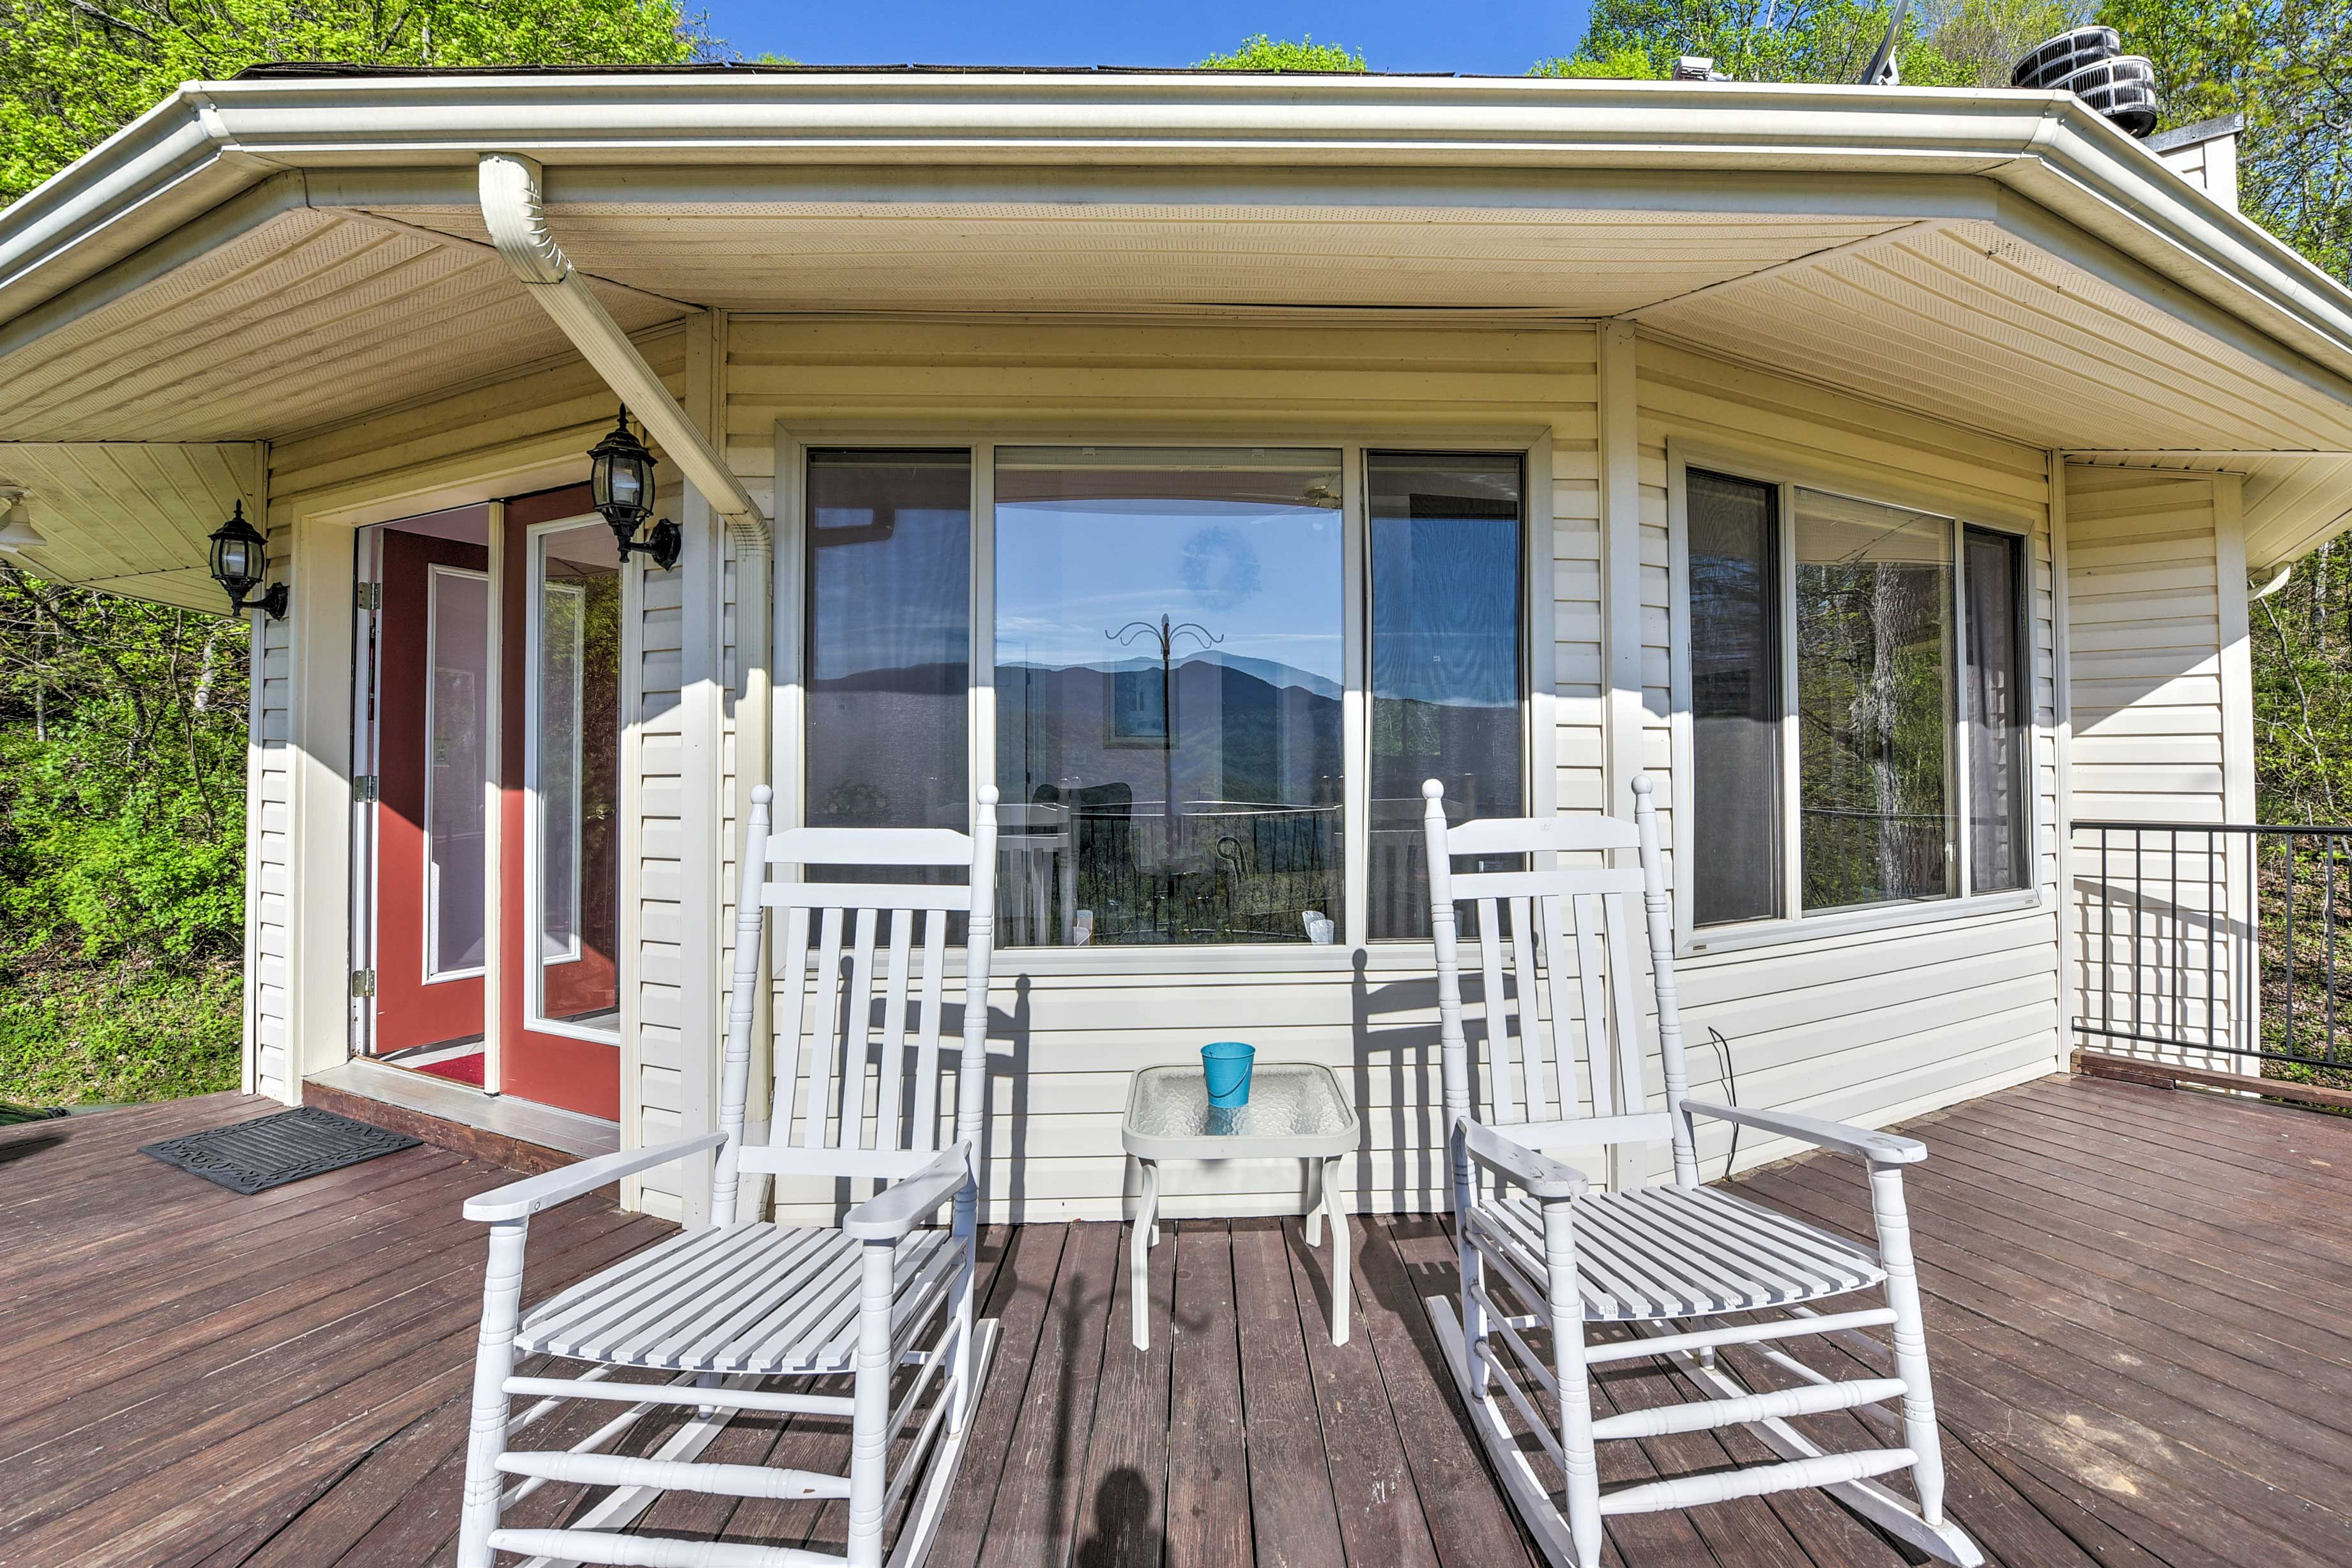 Step outside to find a wraparound porch with rockers  and breathtaking views.